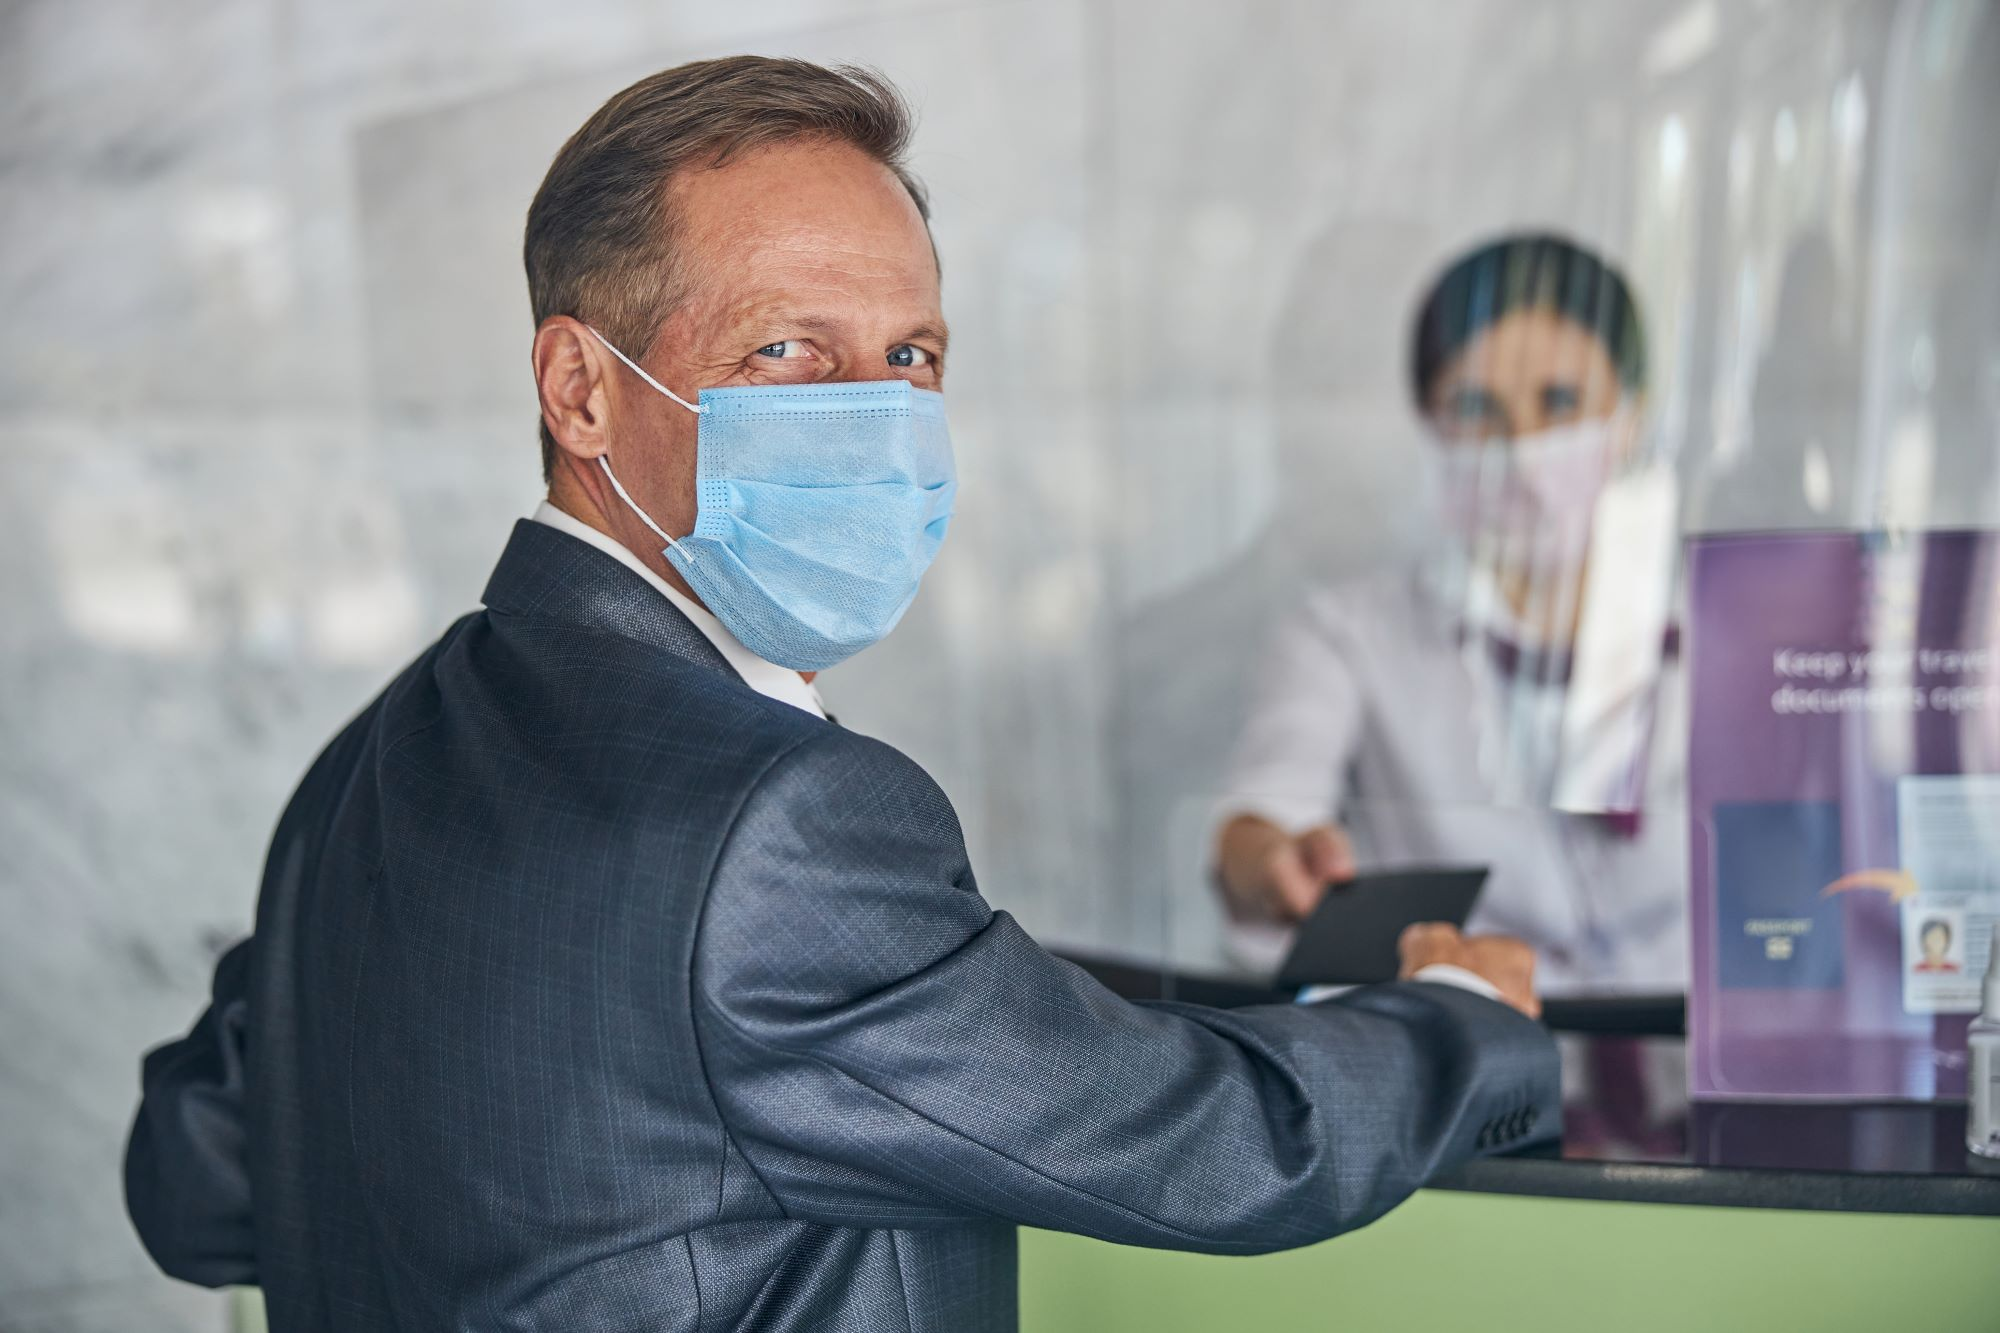 Happy man in suit gives documents to woman at hotel registration desk while wearing masks.